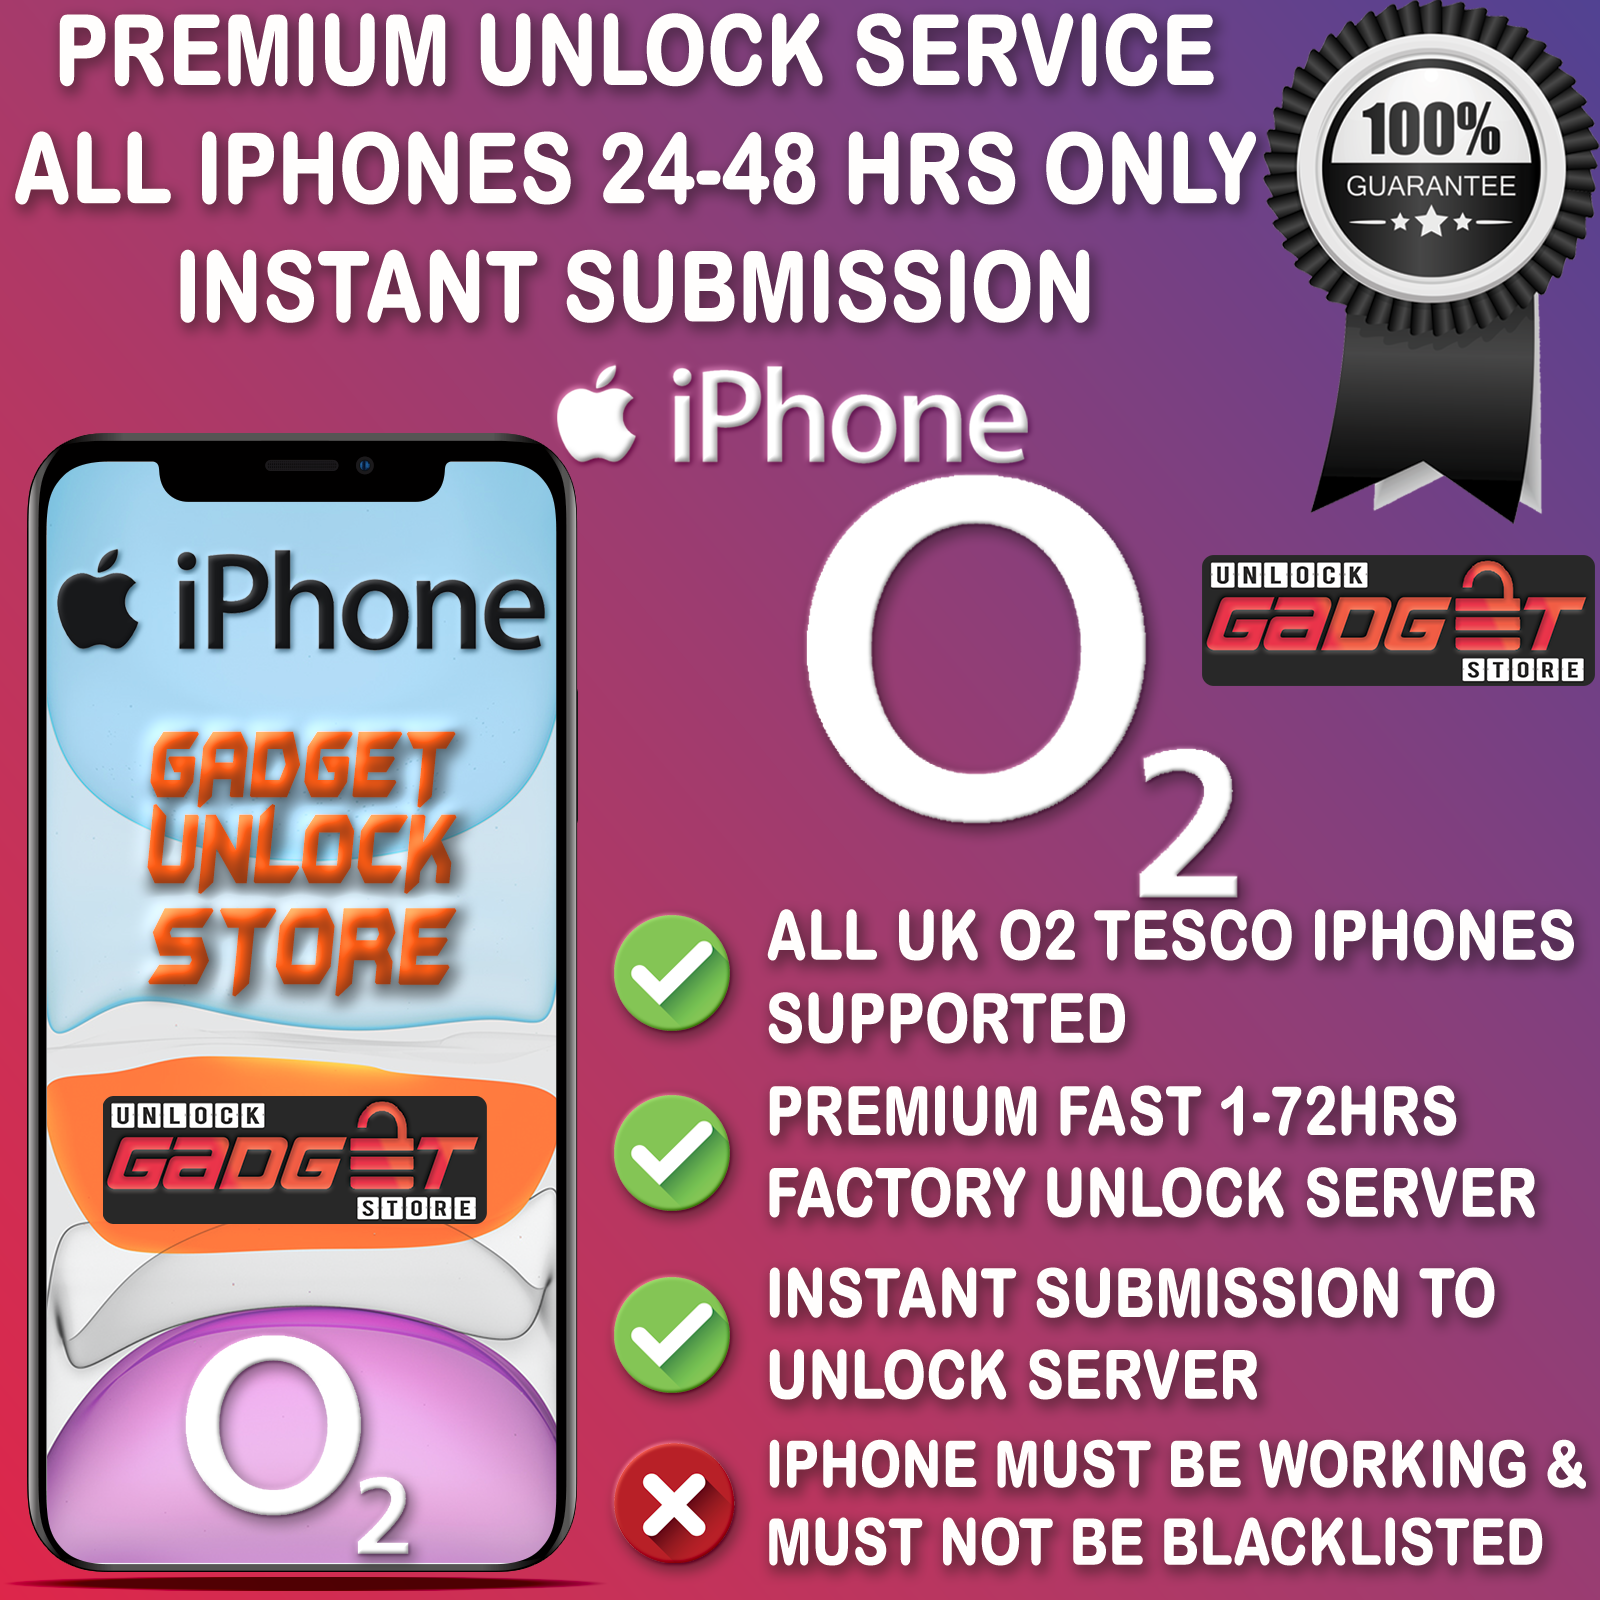 UNLOCK CODE FOR IPHONE 5 5S 5C SE 6 6S 7 8 X XR XS 11 Pro Max O2 TESCO UK UNLOCK 2